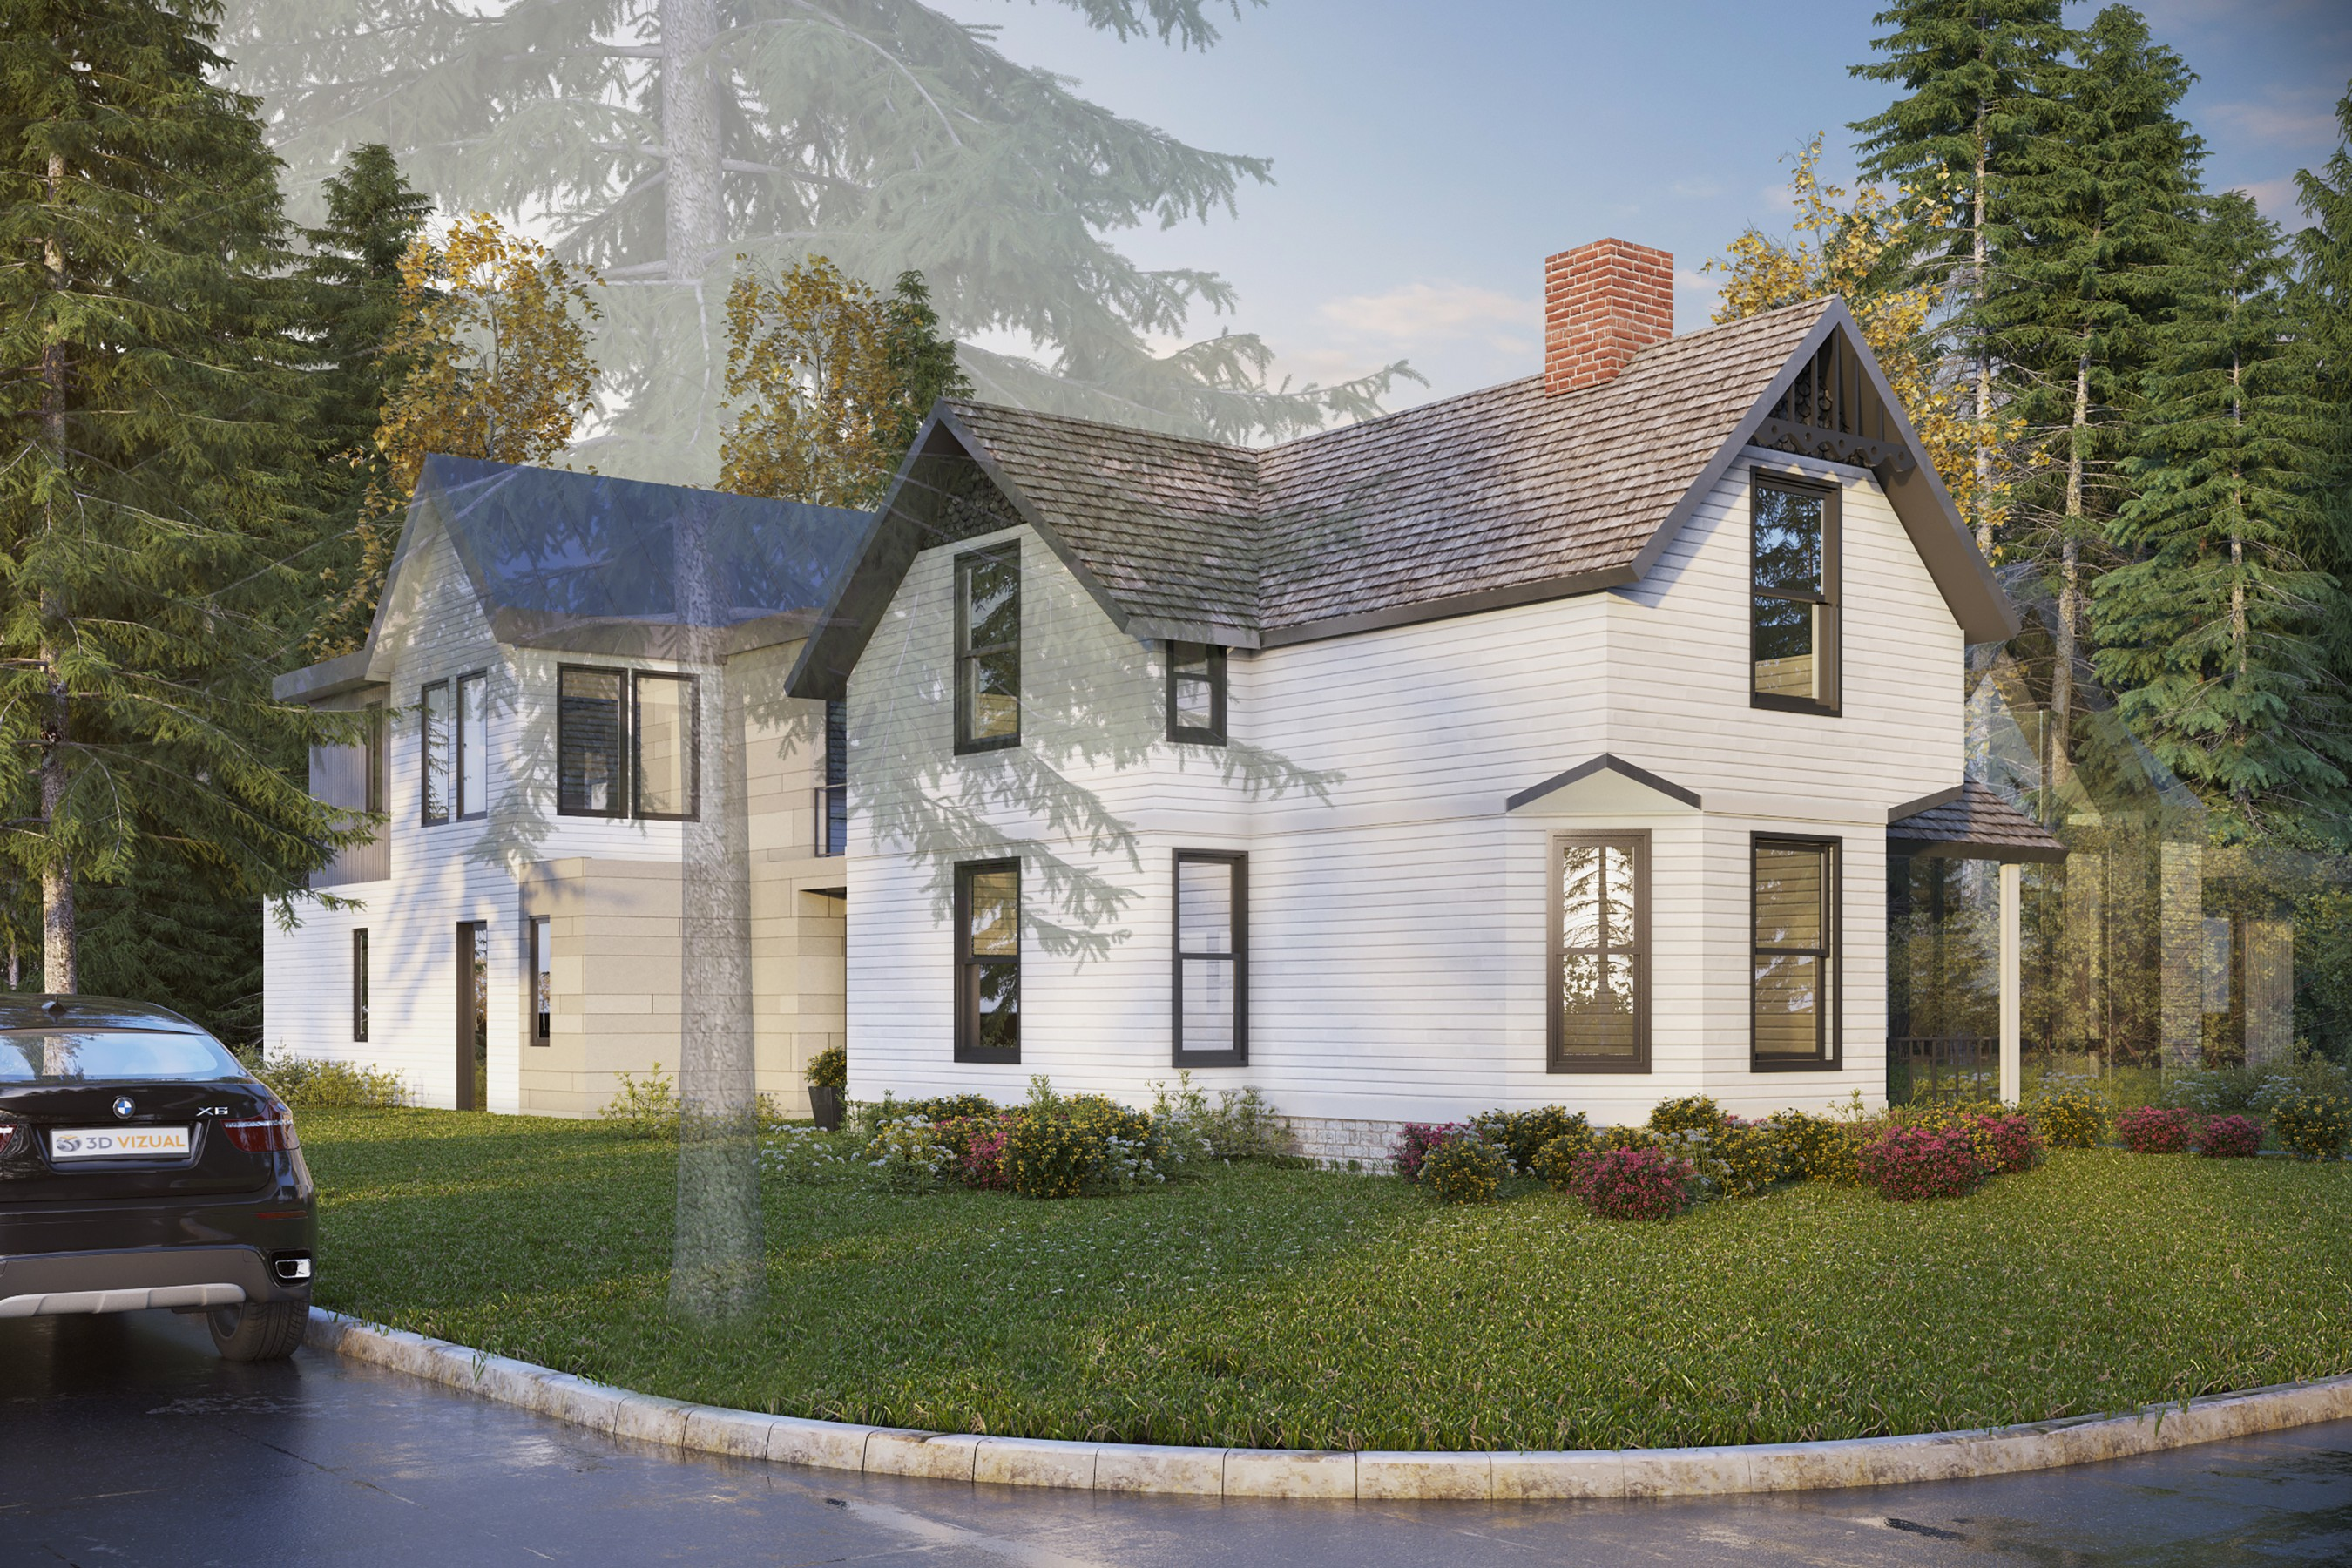 Single Family Home for Sale at West End Victorian 530 W Hallam Street West End, Aspen, Colorado, 81611 United States